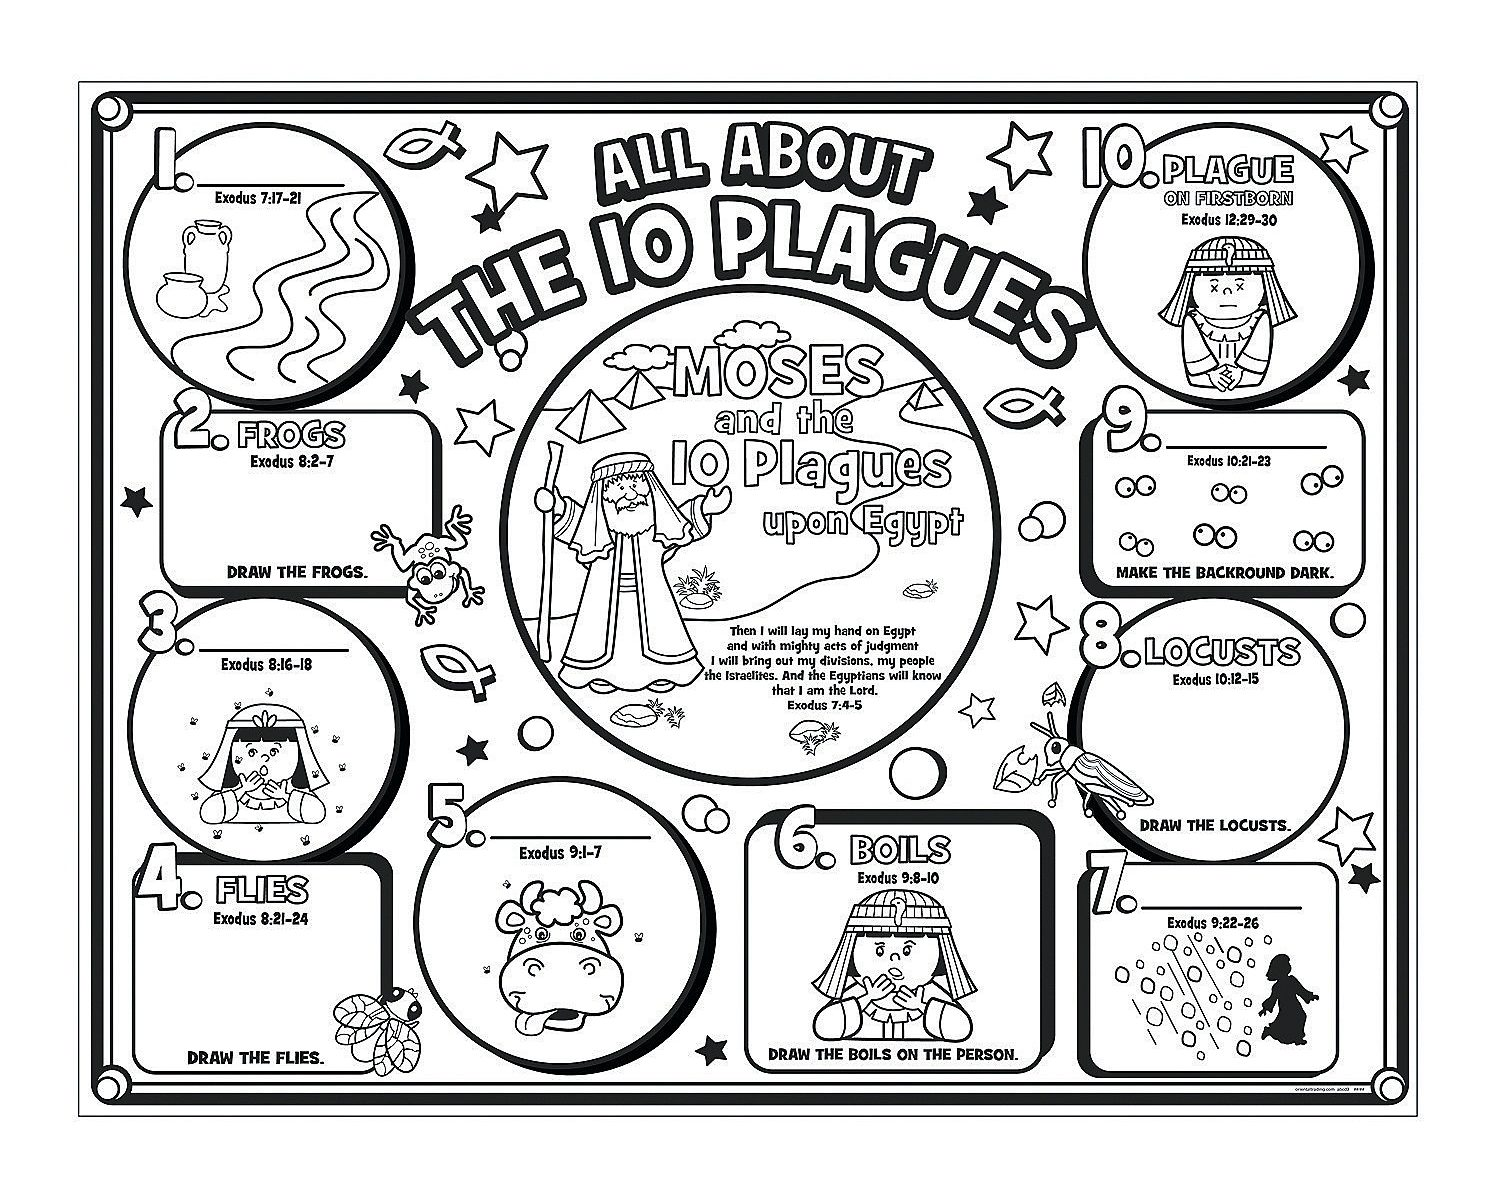 image about 10 Plagues Printable named Plagues Of Egypt Coloring Web site at  Free of charge for